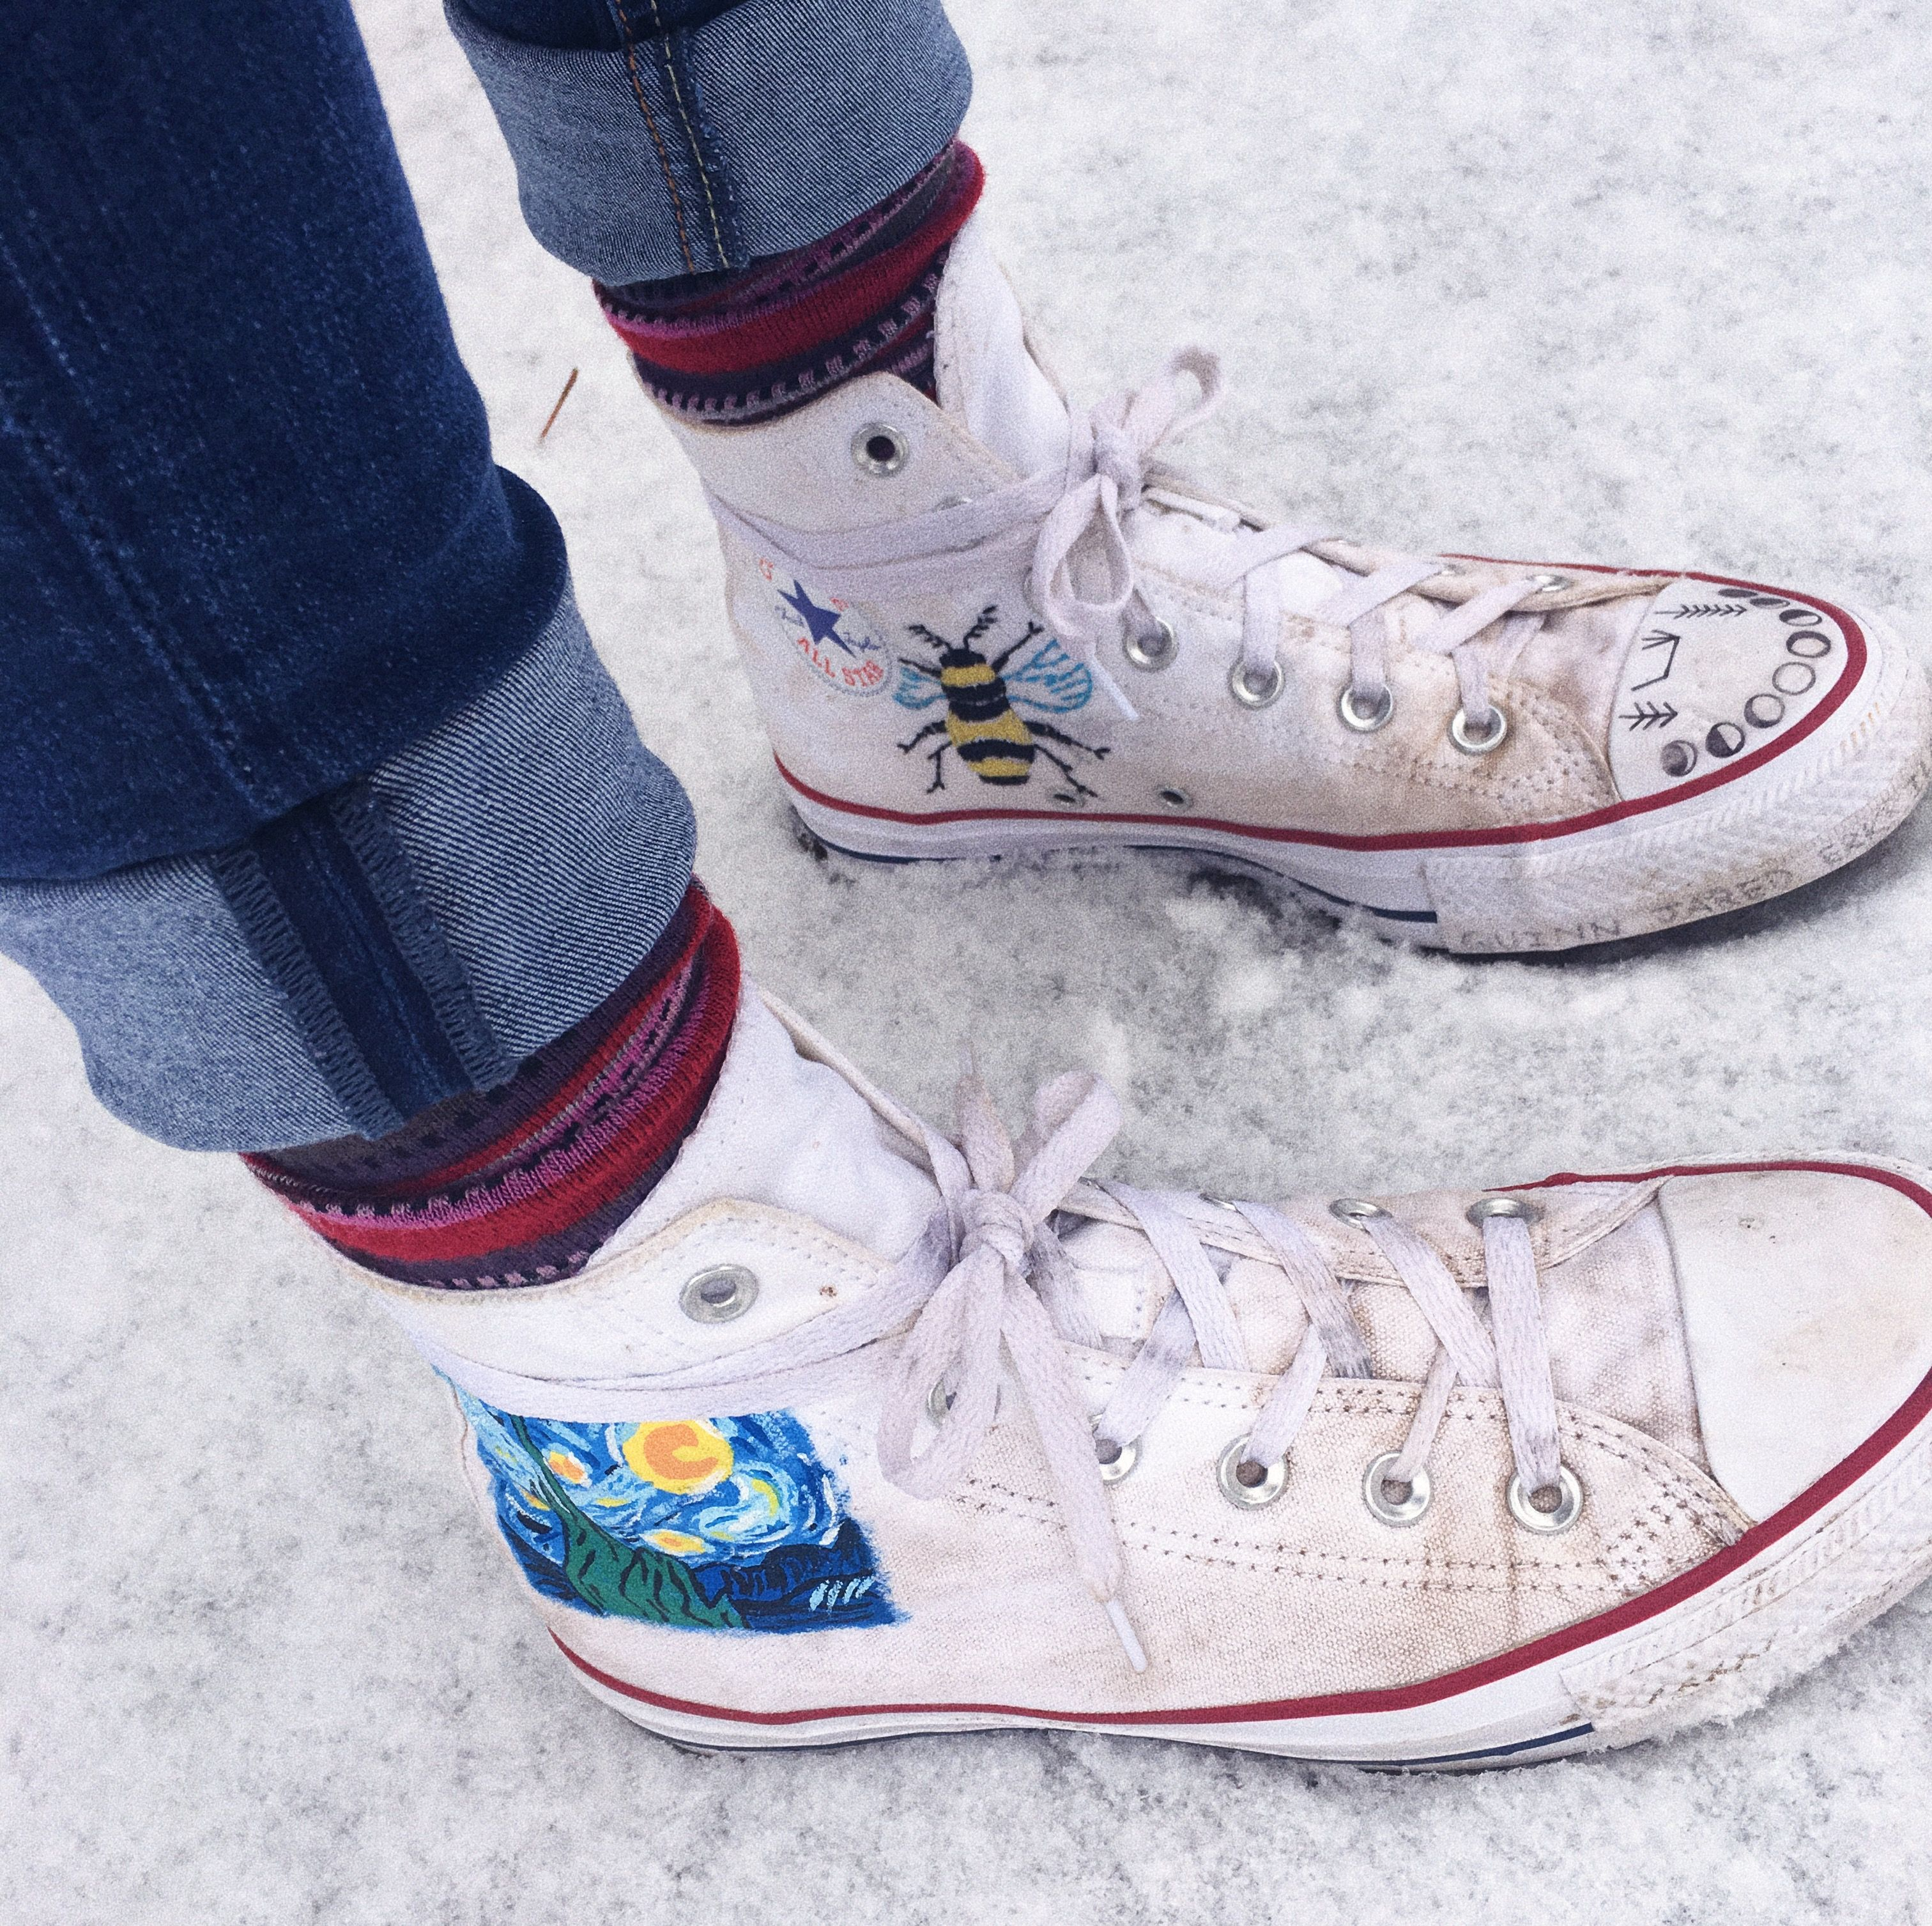 Cool white converse. Snow. Painting, embroider. Bee. Moon